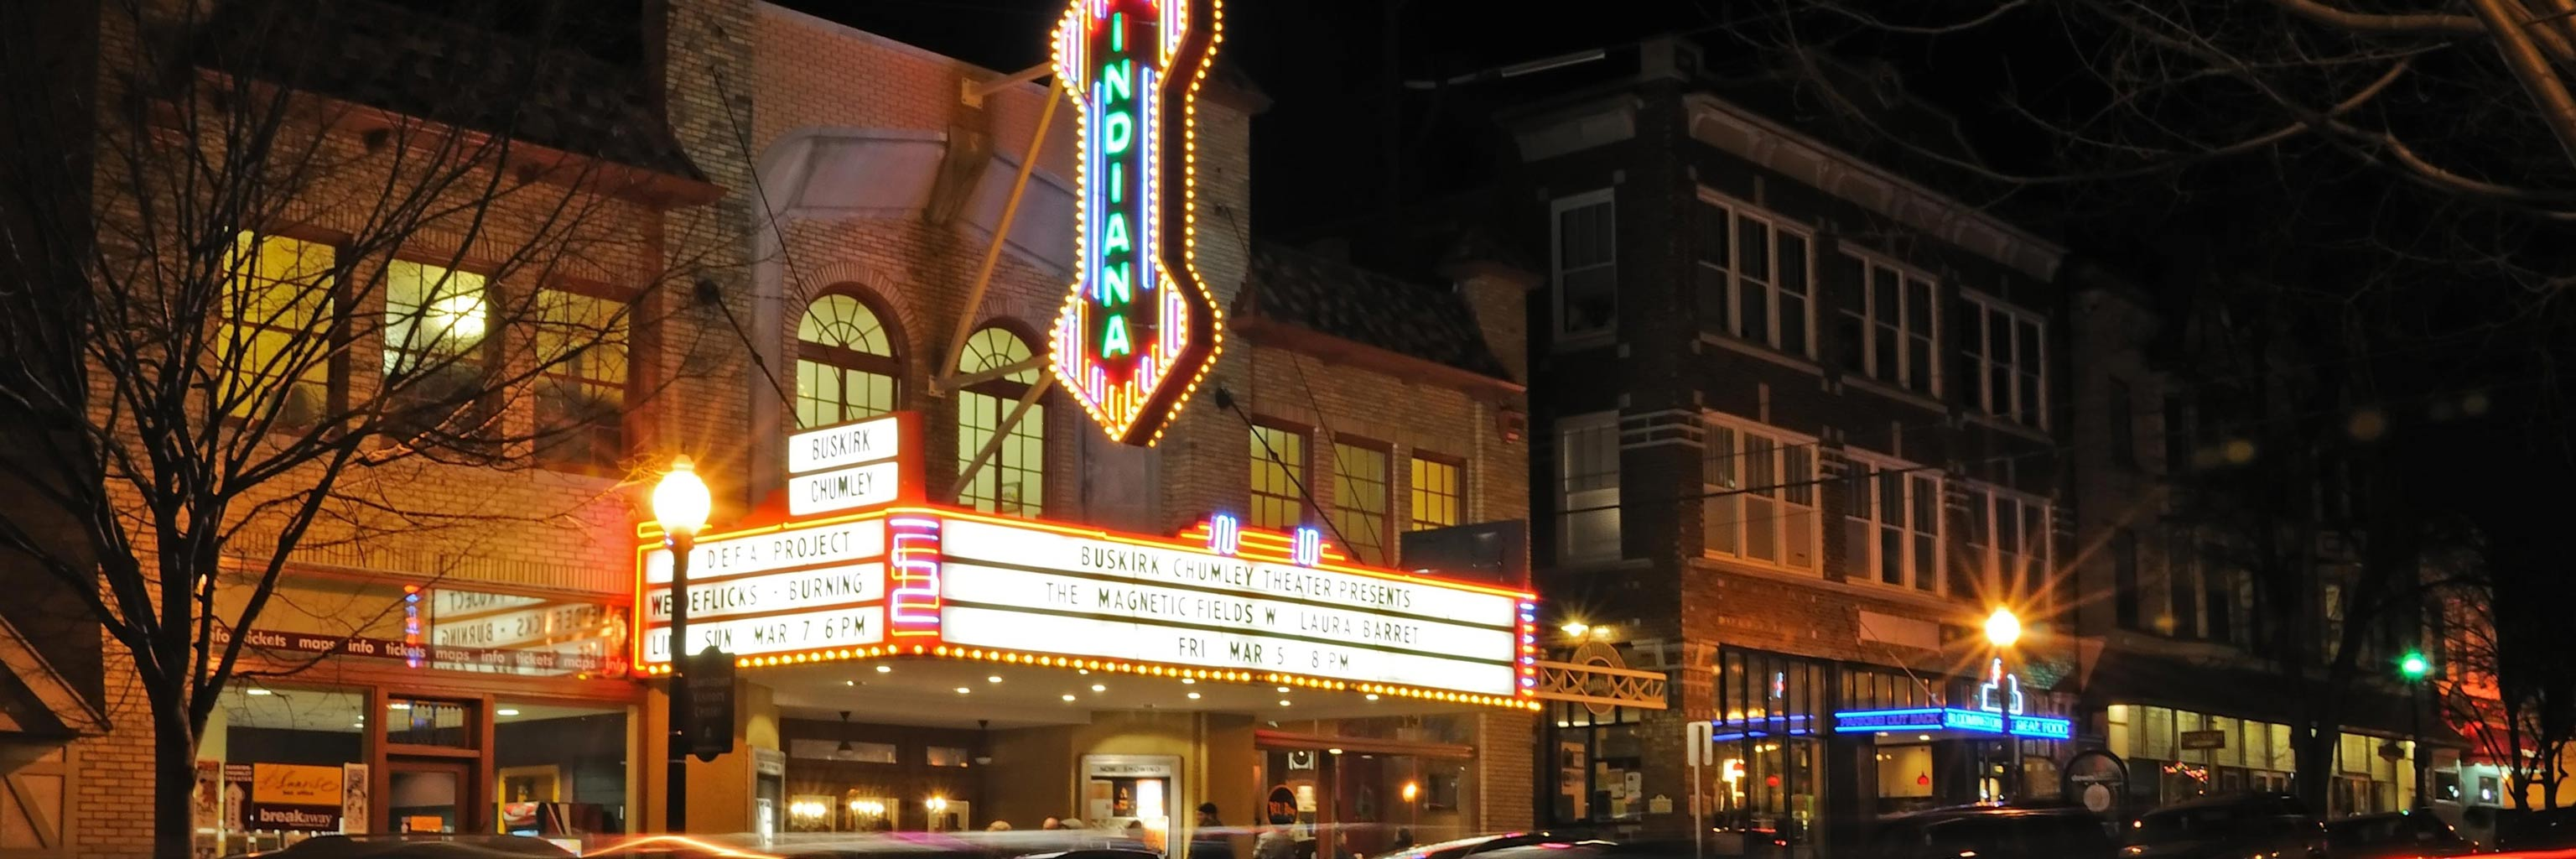 The Buskirk-Chumley Theater sign illuminated at night on Kirkwood Avenue in Bloomington, Indiana.